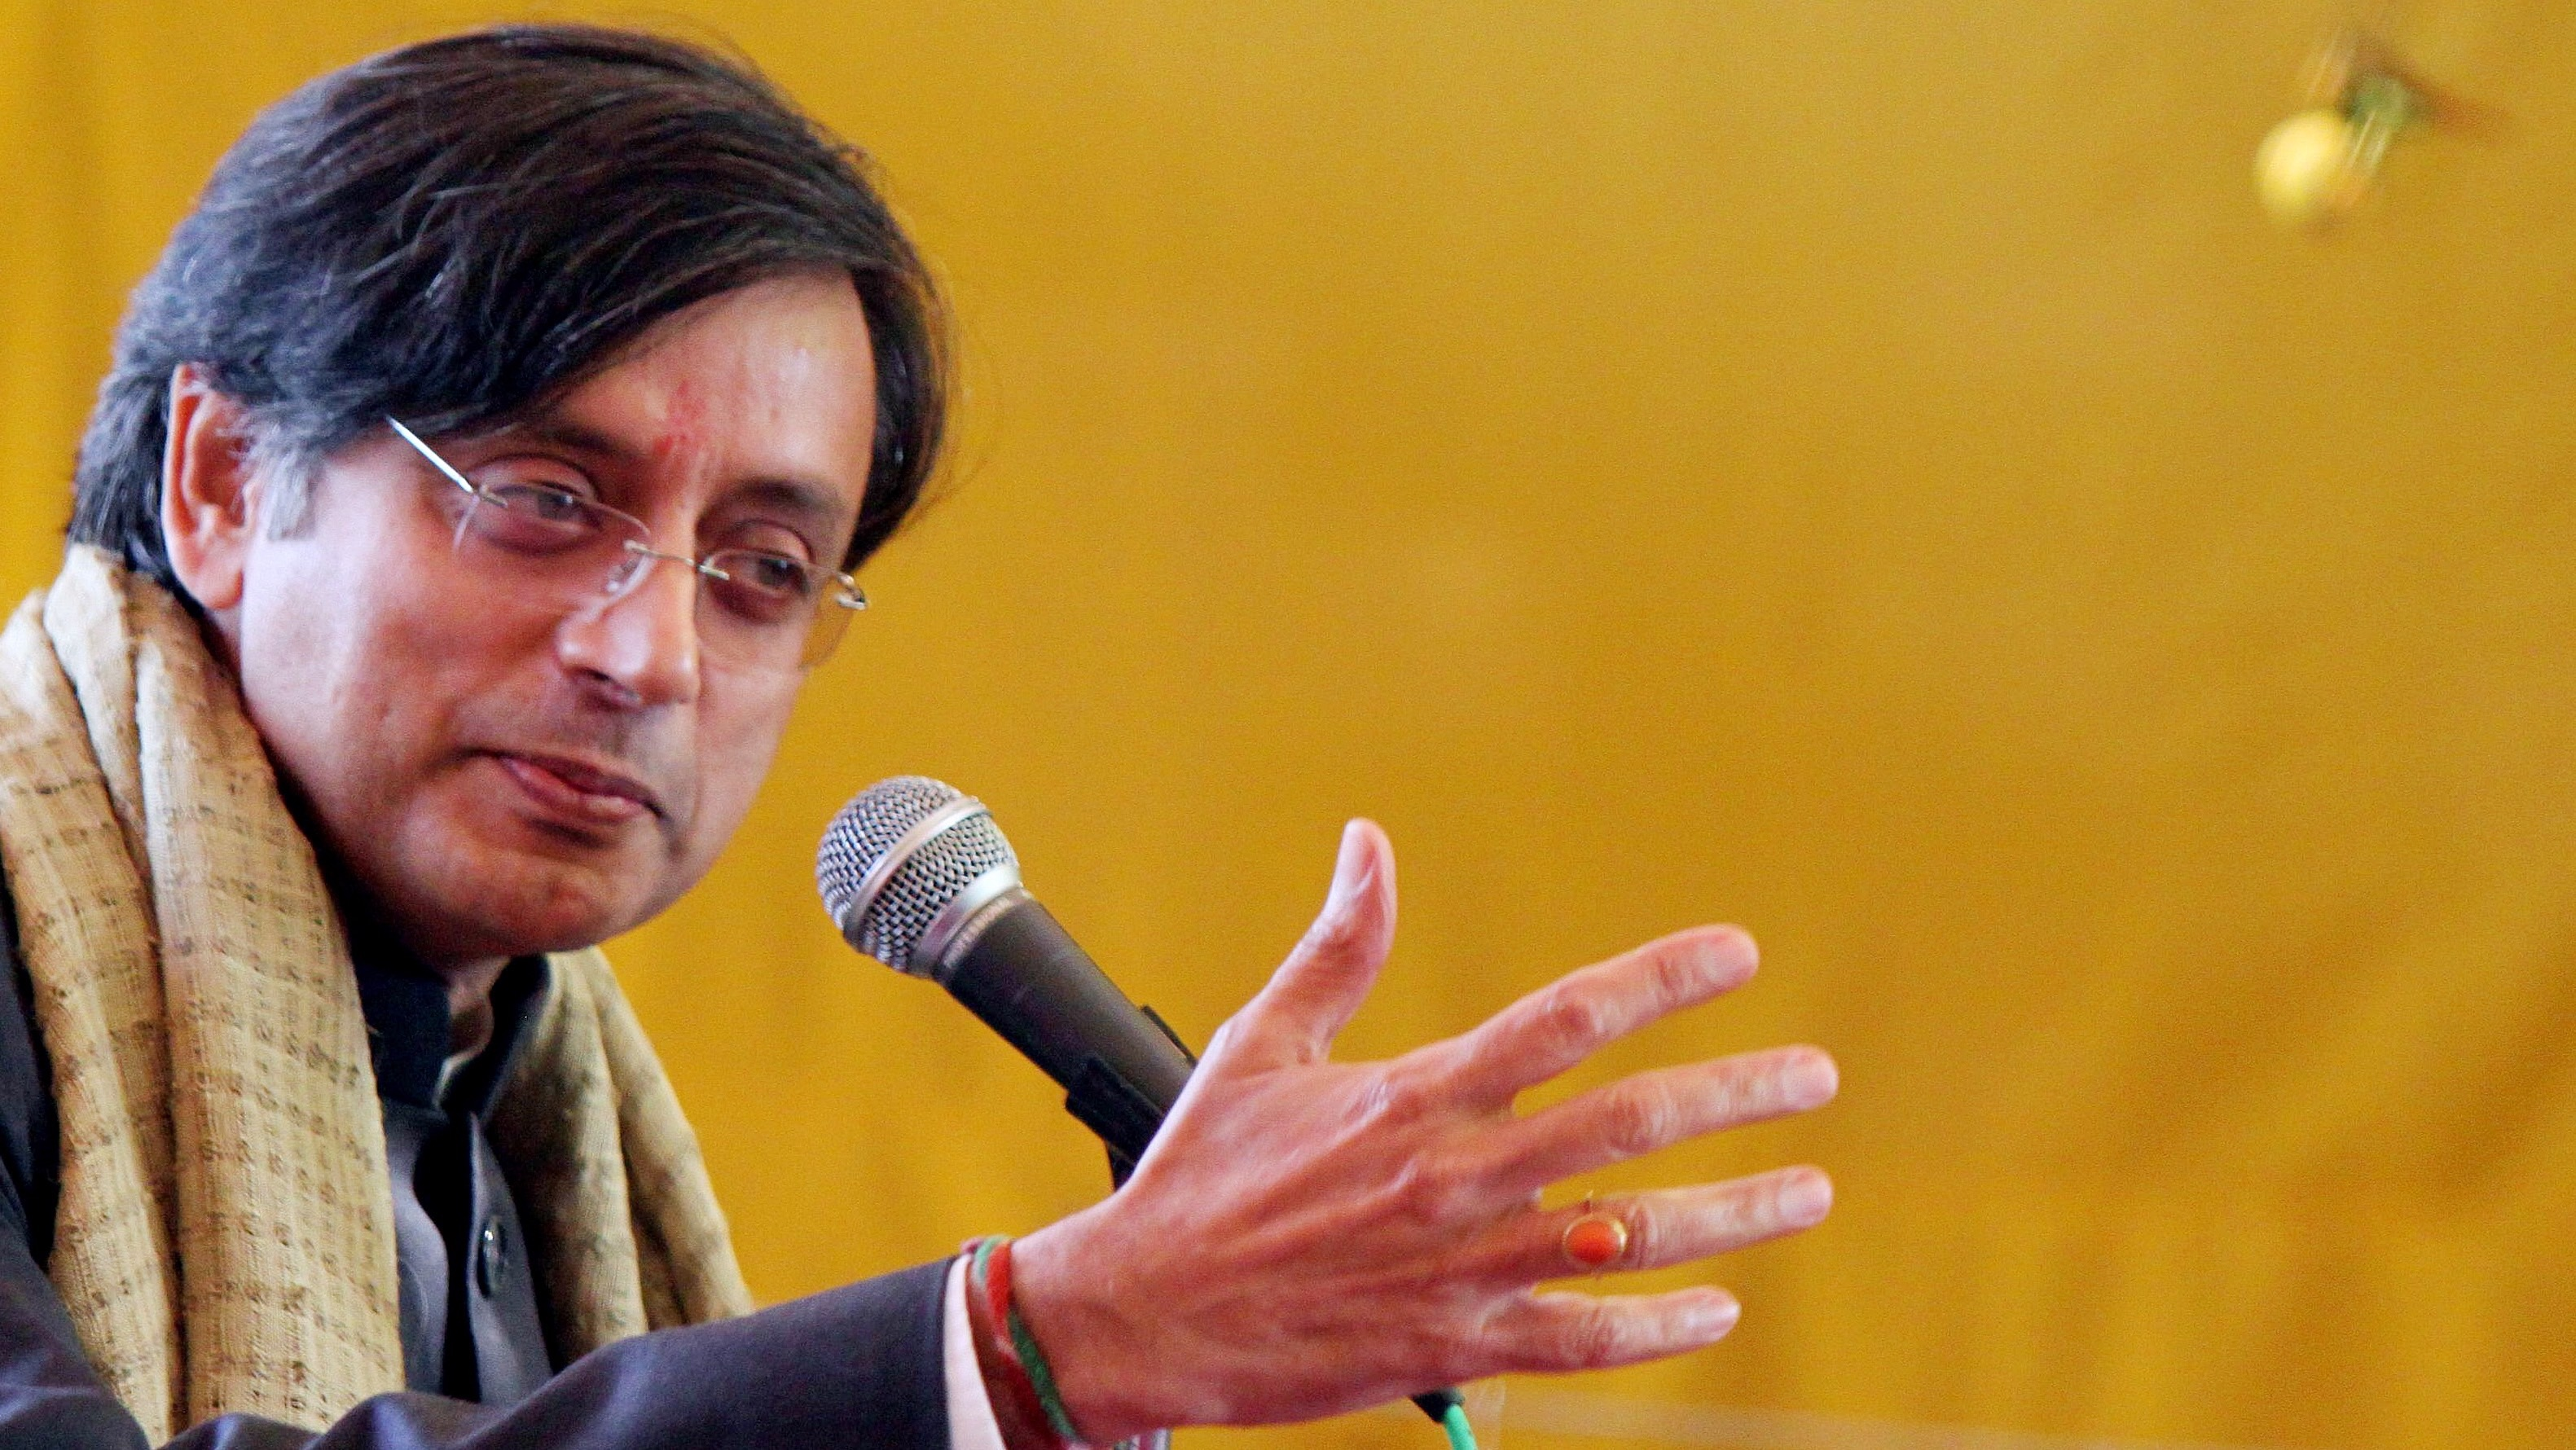 epa01976902 Indian minister of state Shashi Tharoor addresses during the inauguration of crafts bazaar in New Delhi, India on 30 December 2009.  The annual craft bazaar exhibiting exquisite crafts and cultural features of various Indian states is organized in Dilli Haat. The Dilli Haat provides the ambience of a traditional Rural Haat or village market.  EPA/ANINDITO MUKHERJEE